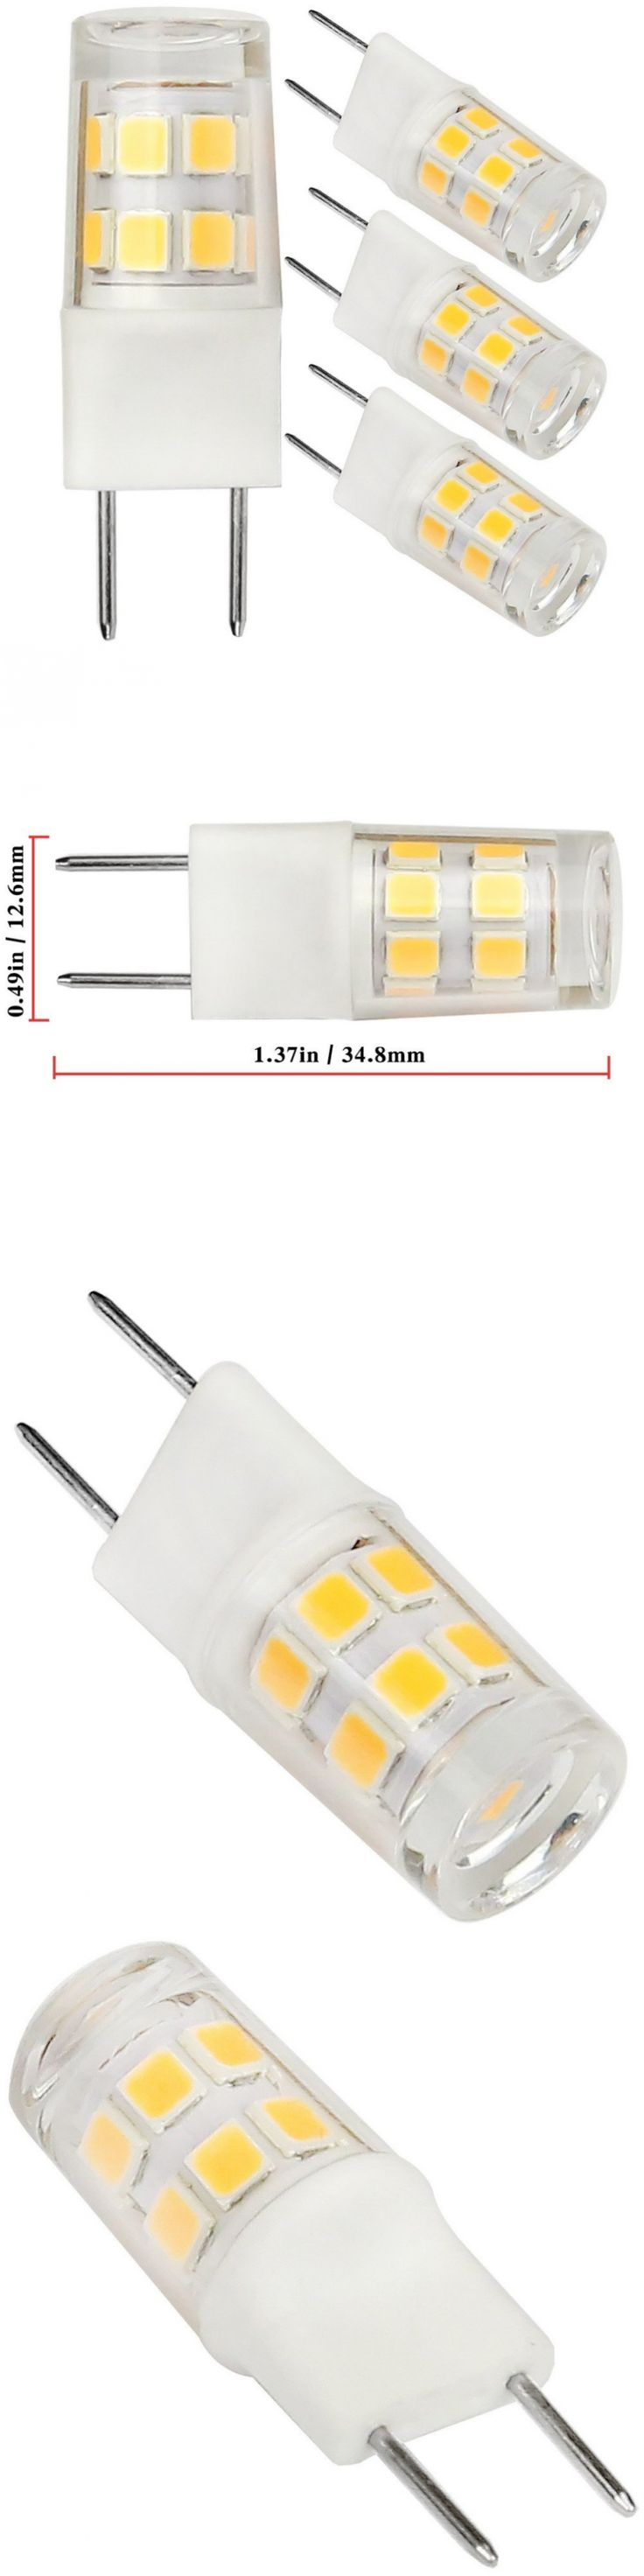 12w led 5050smd corn bulb spot light warm white lamp g4 ebay - Light Bulbs 20706 New G8 Led Bulb Warm White 3000k 2 5w 25w Equivalent Halogen